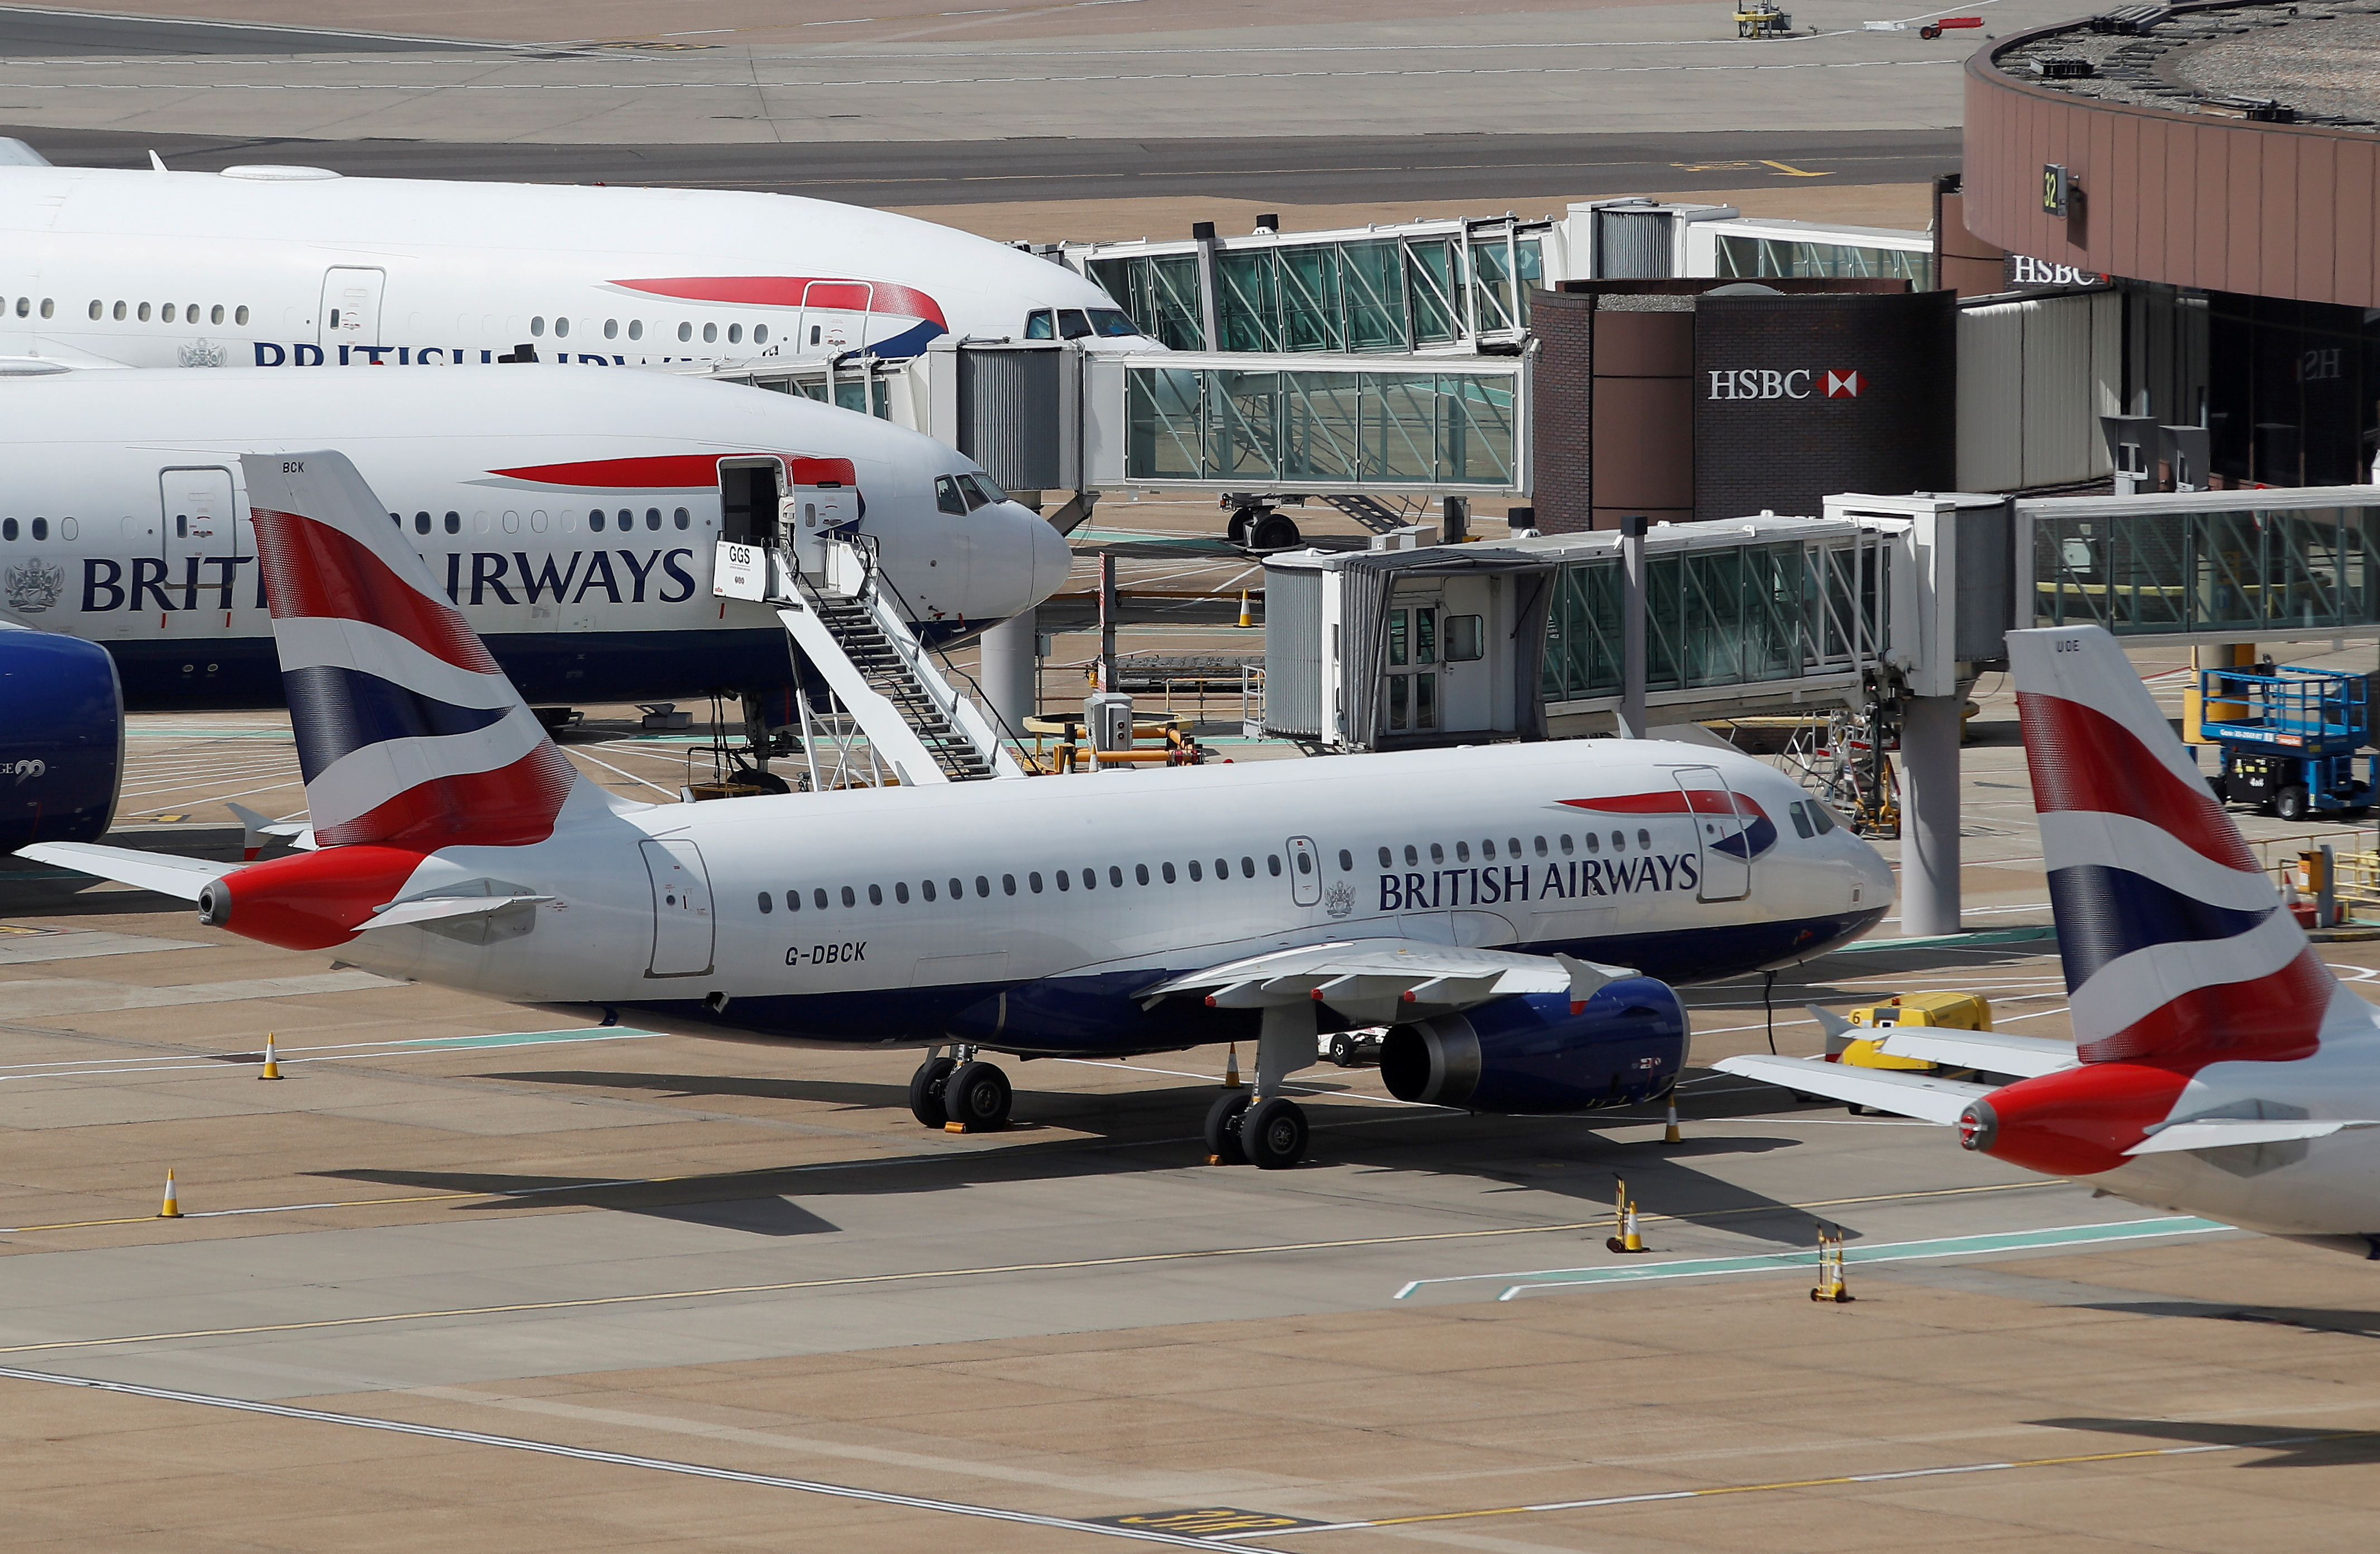 British Airways aircraft are parked at the South Terminal at Gatwick Airport, in Crawley, Britain, August 25, 2021.  REUTERS/Peter Nicholls/File Photo